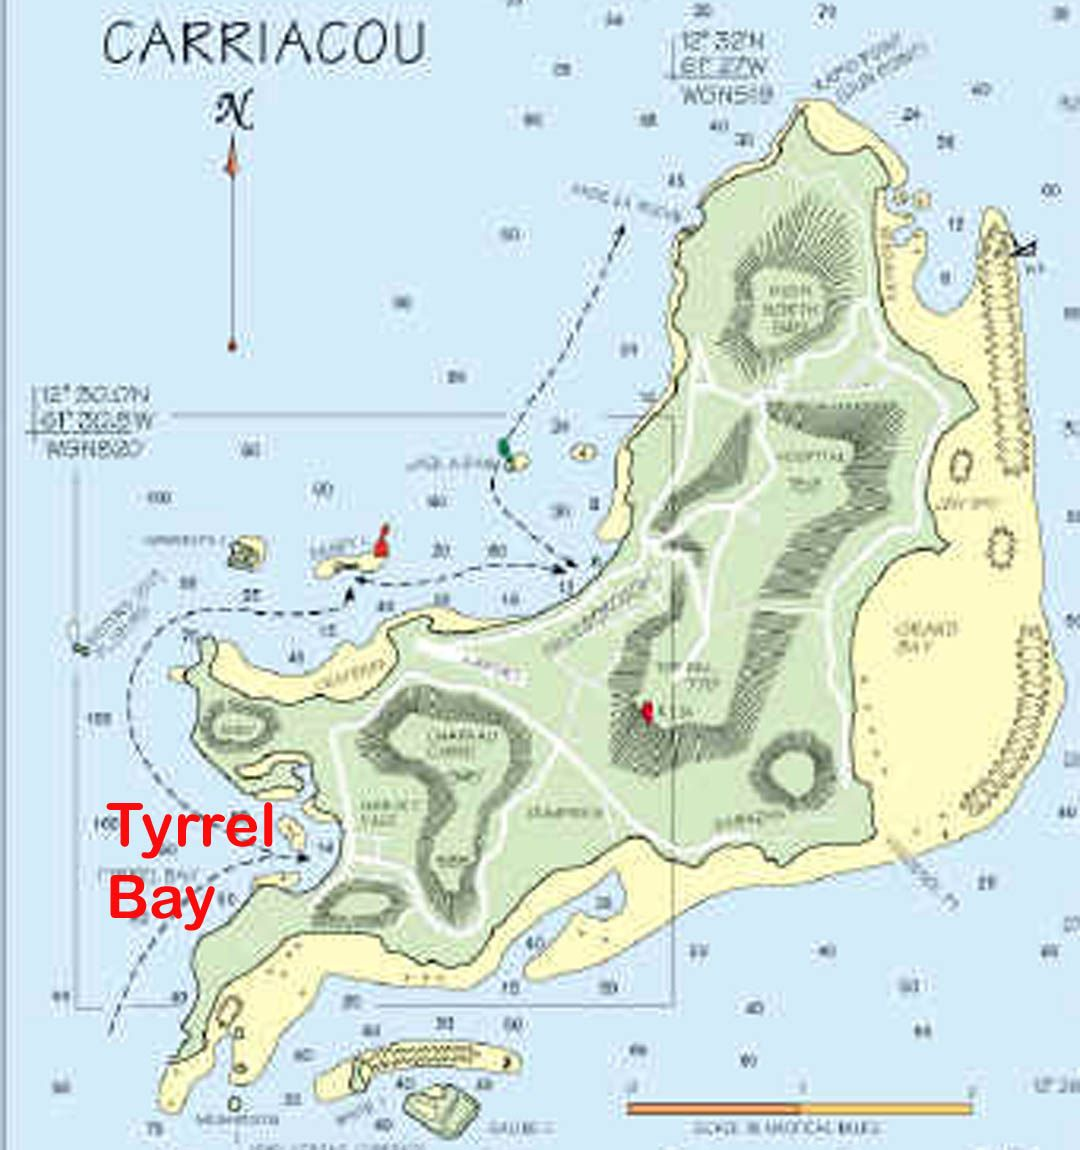 Carriacou map My home Pinterest Caribbean West indies and Buckets